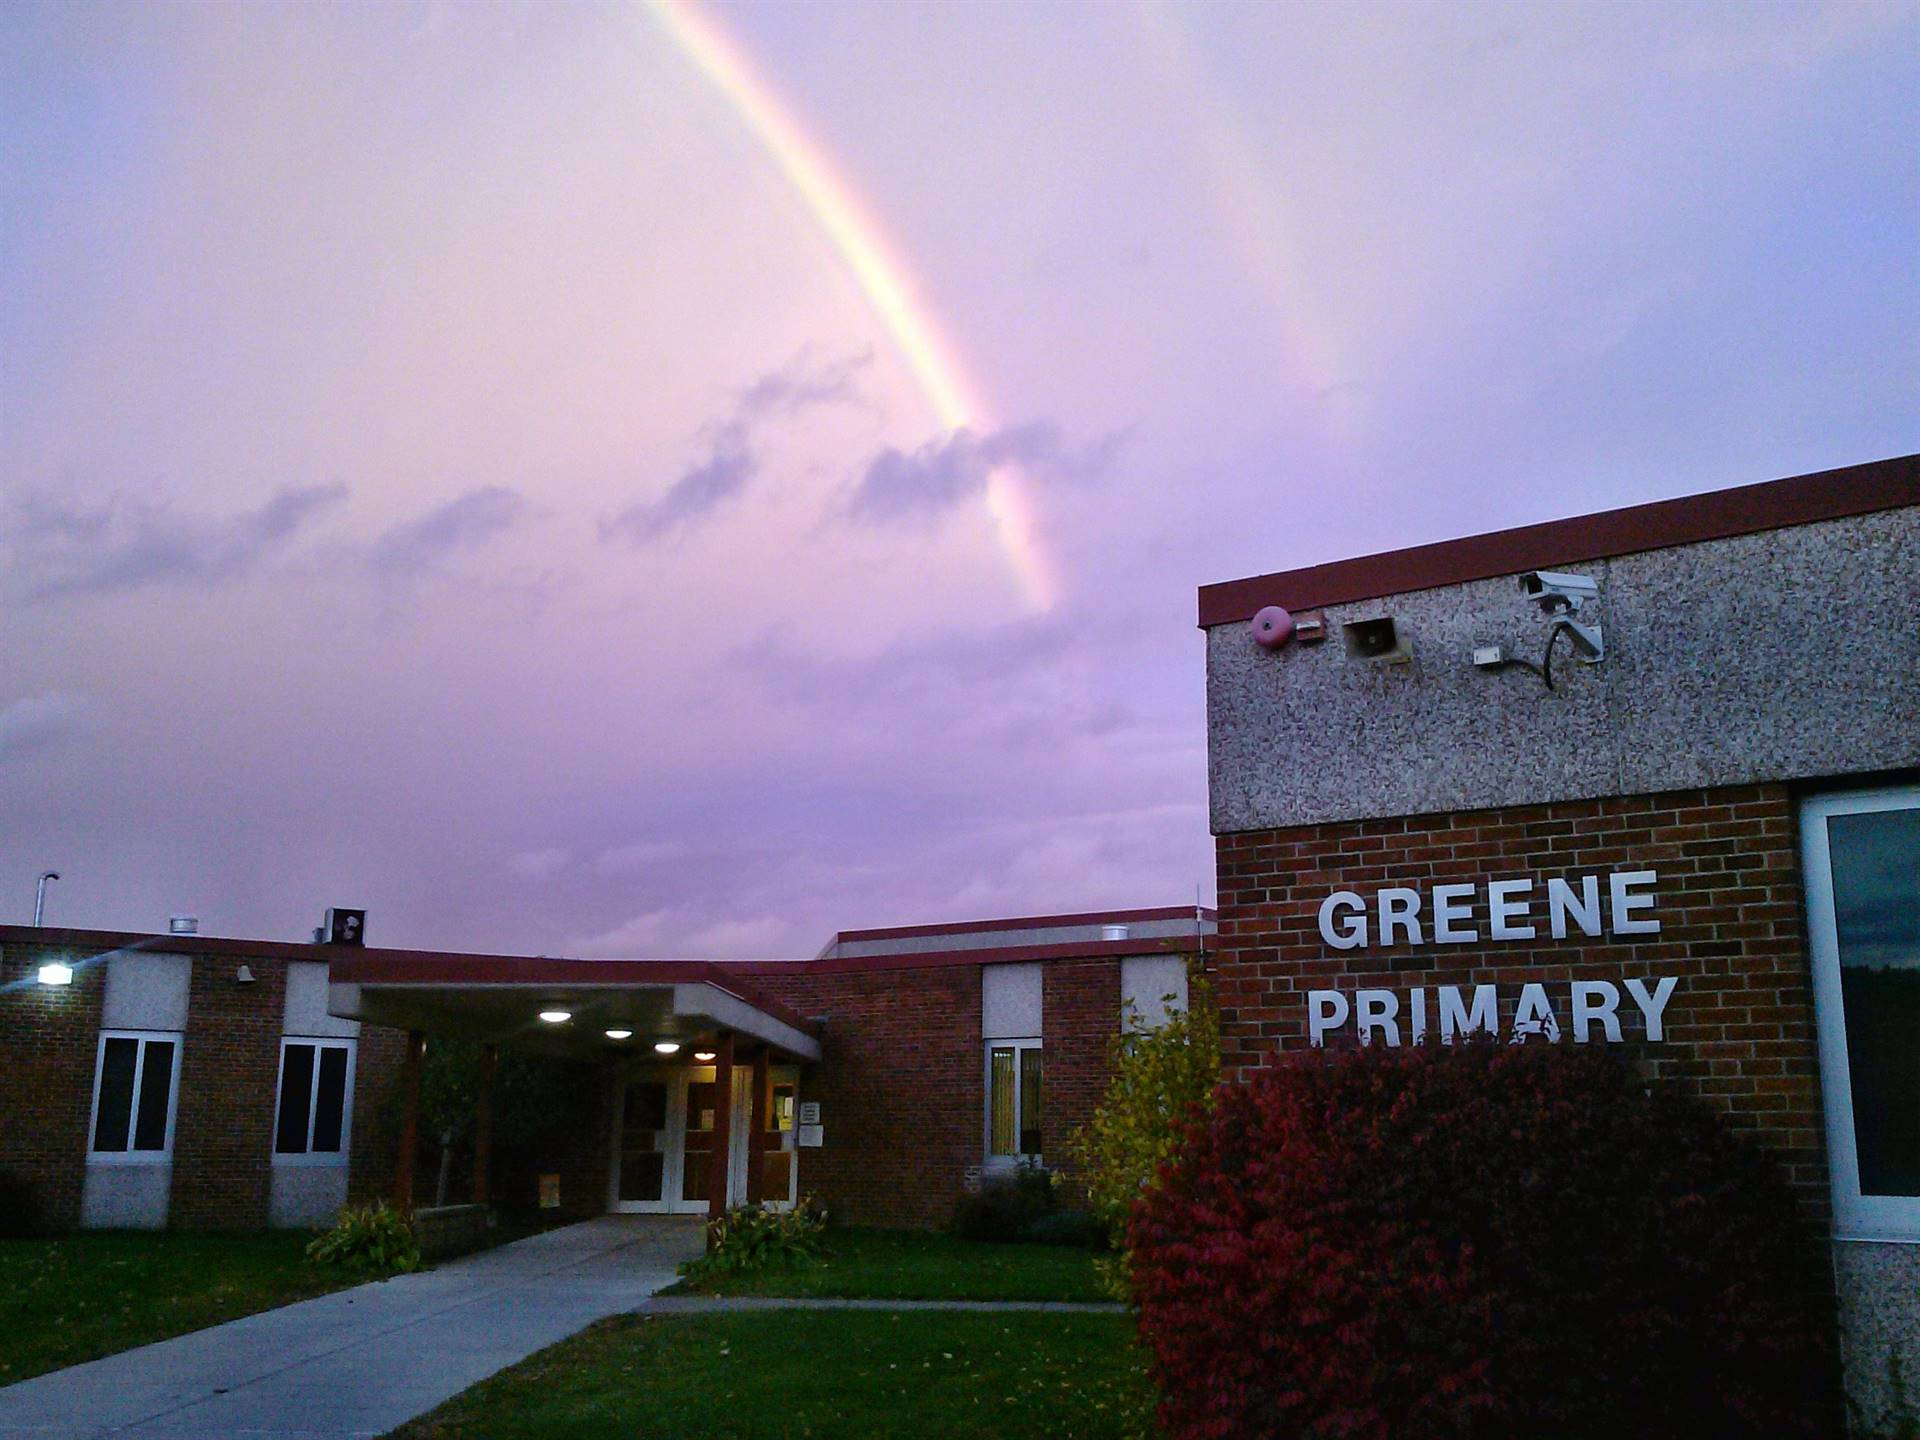 Photo of a rainbow over the Greene Primary School